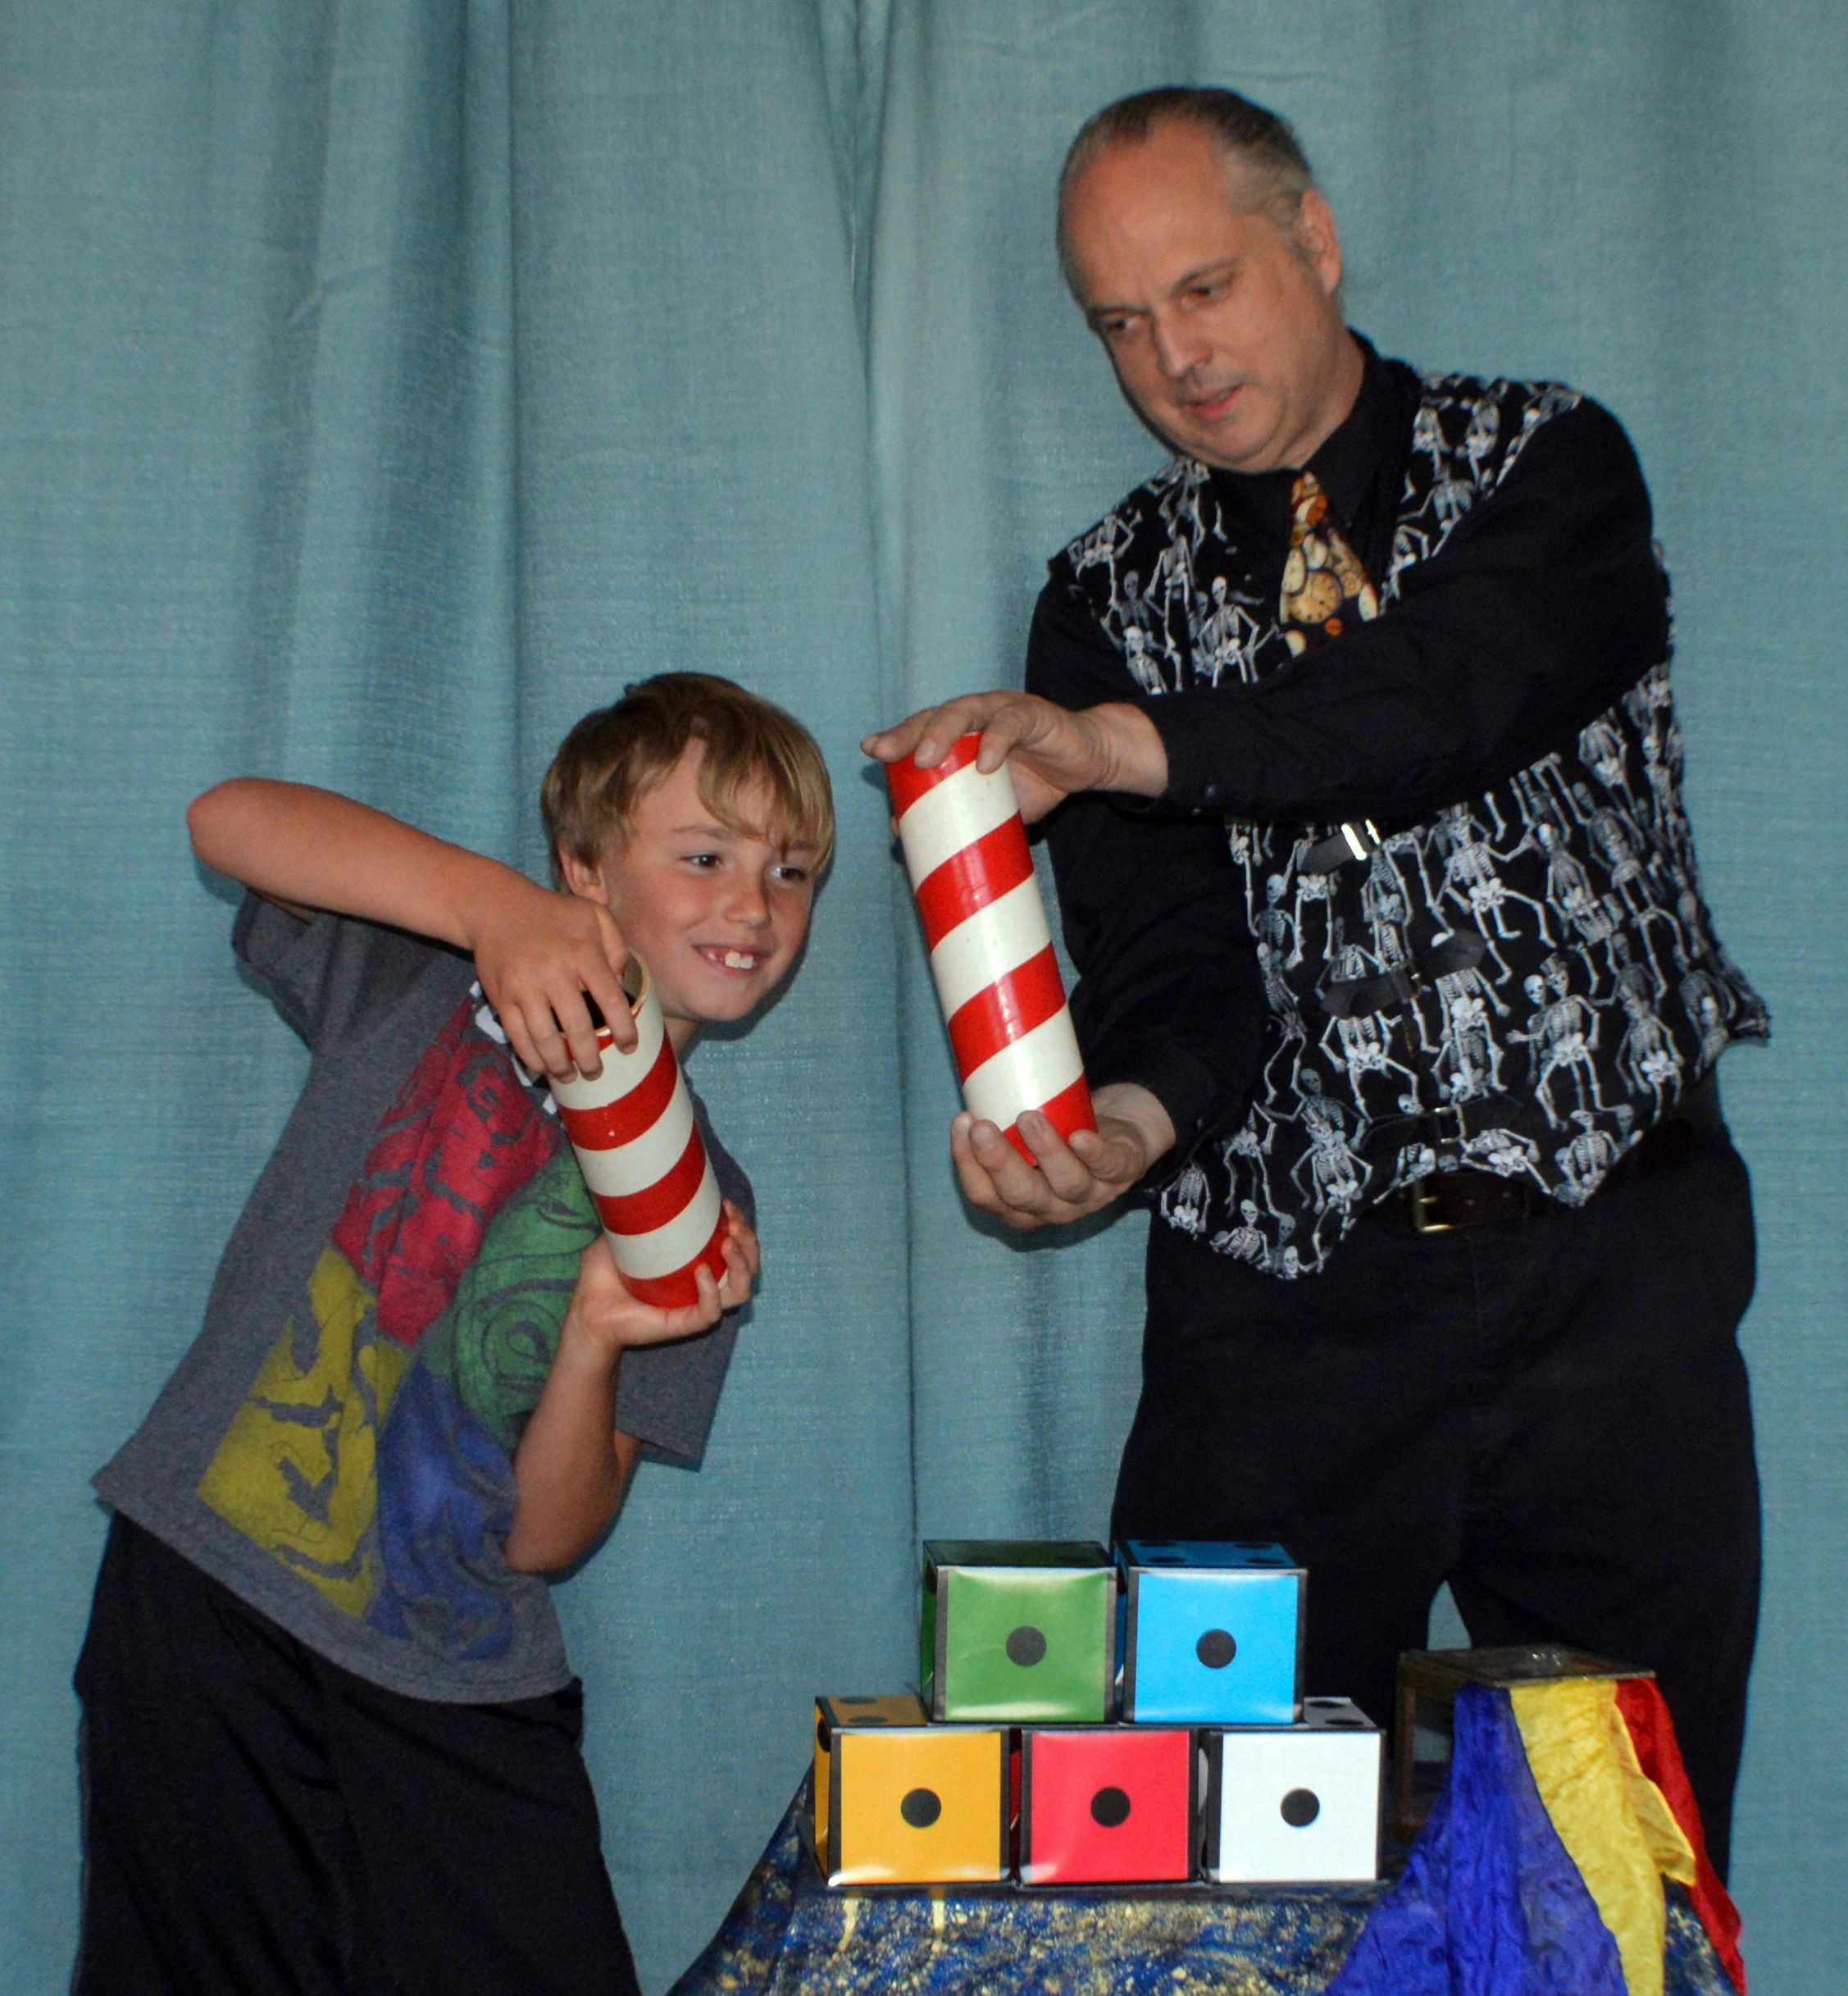 Performing the audience participation comedy magic trick Topsy Turvy Bottles with my great nephew.